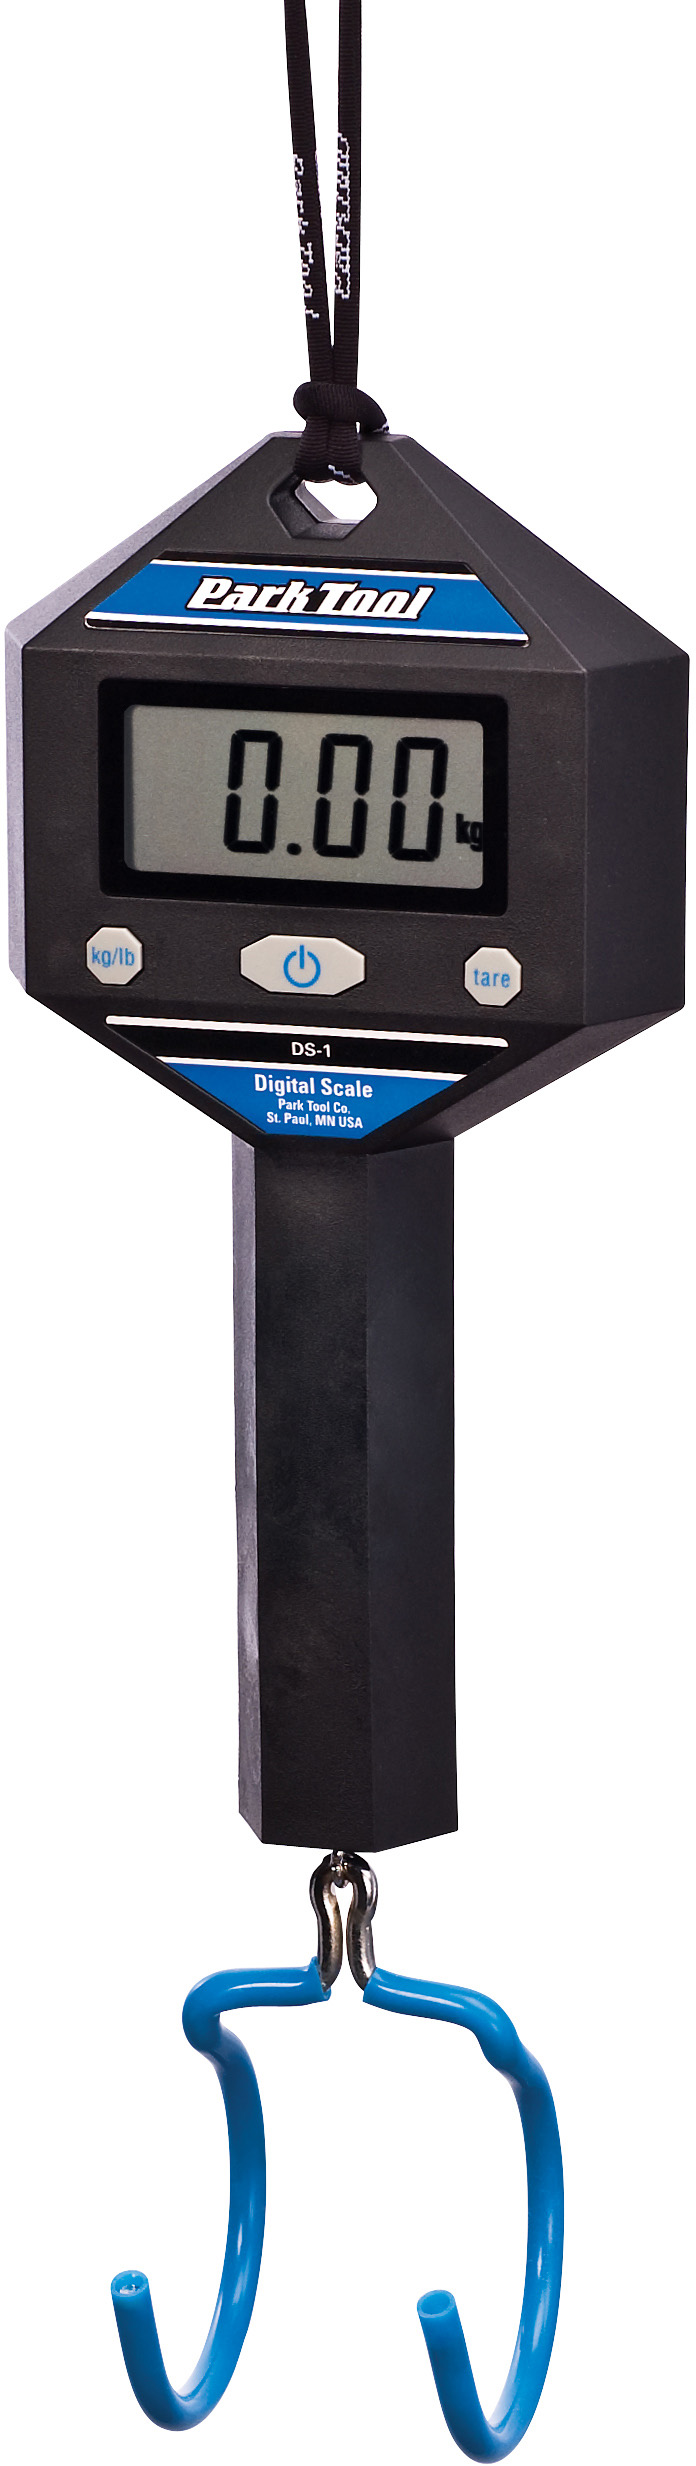 Park Tool Digital Scale DS1 |